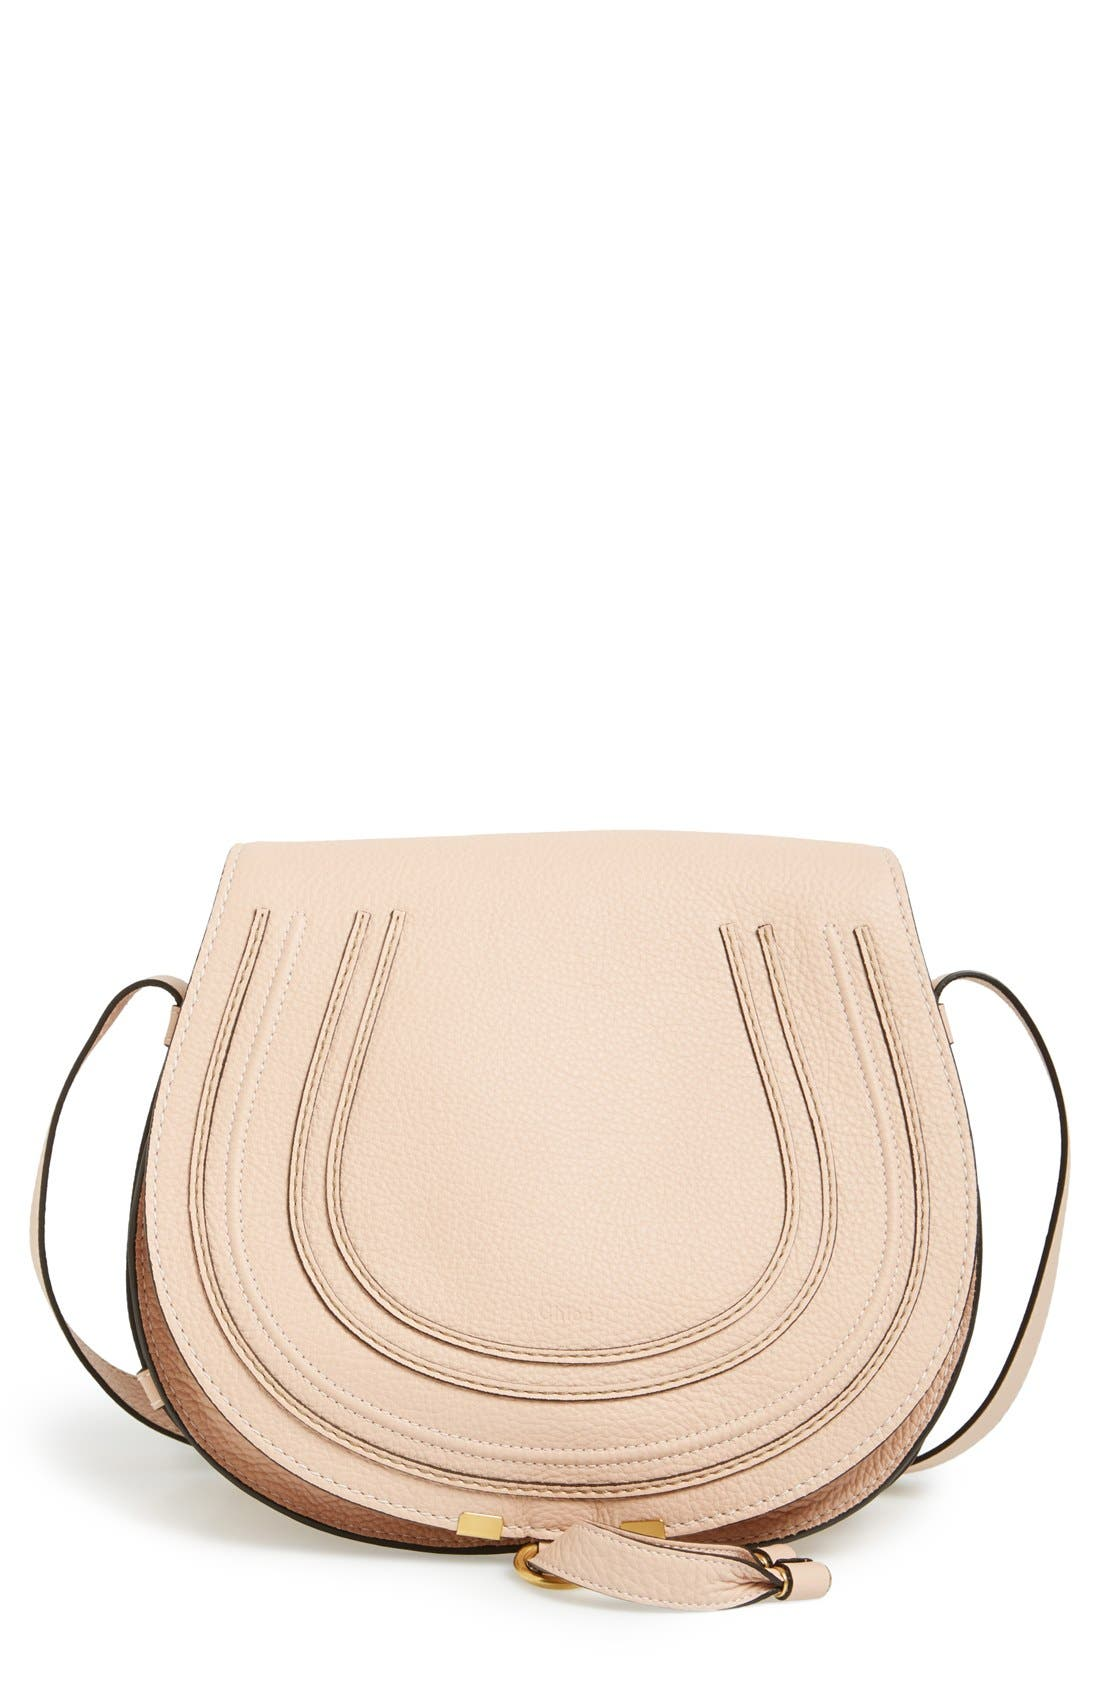 Alternate Image 1 Selected - Chloé 'Marcie - Medium' Leather Crossbody Bag